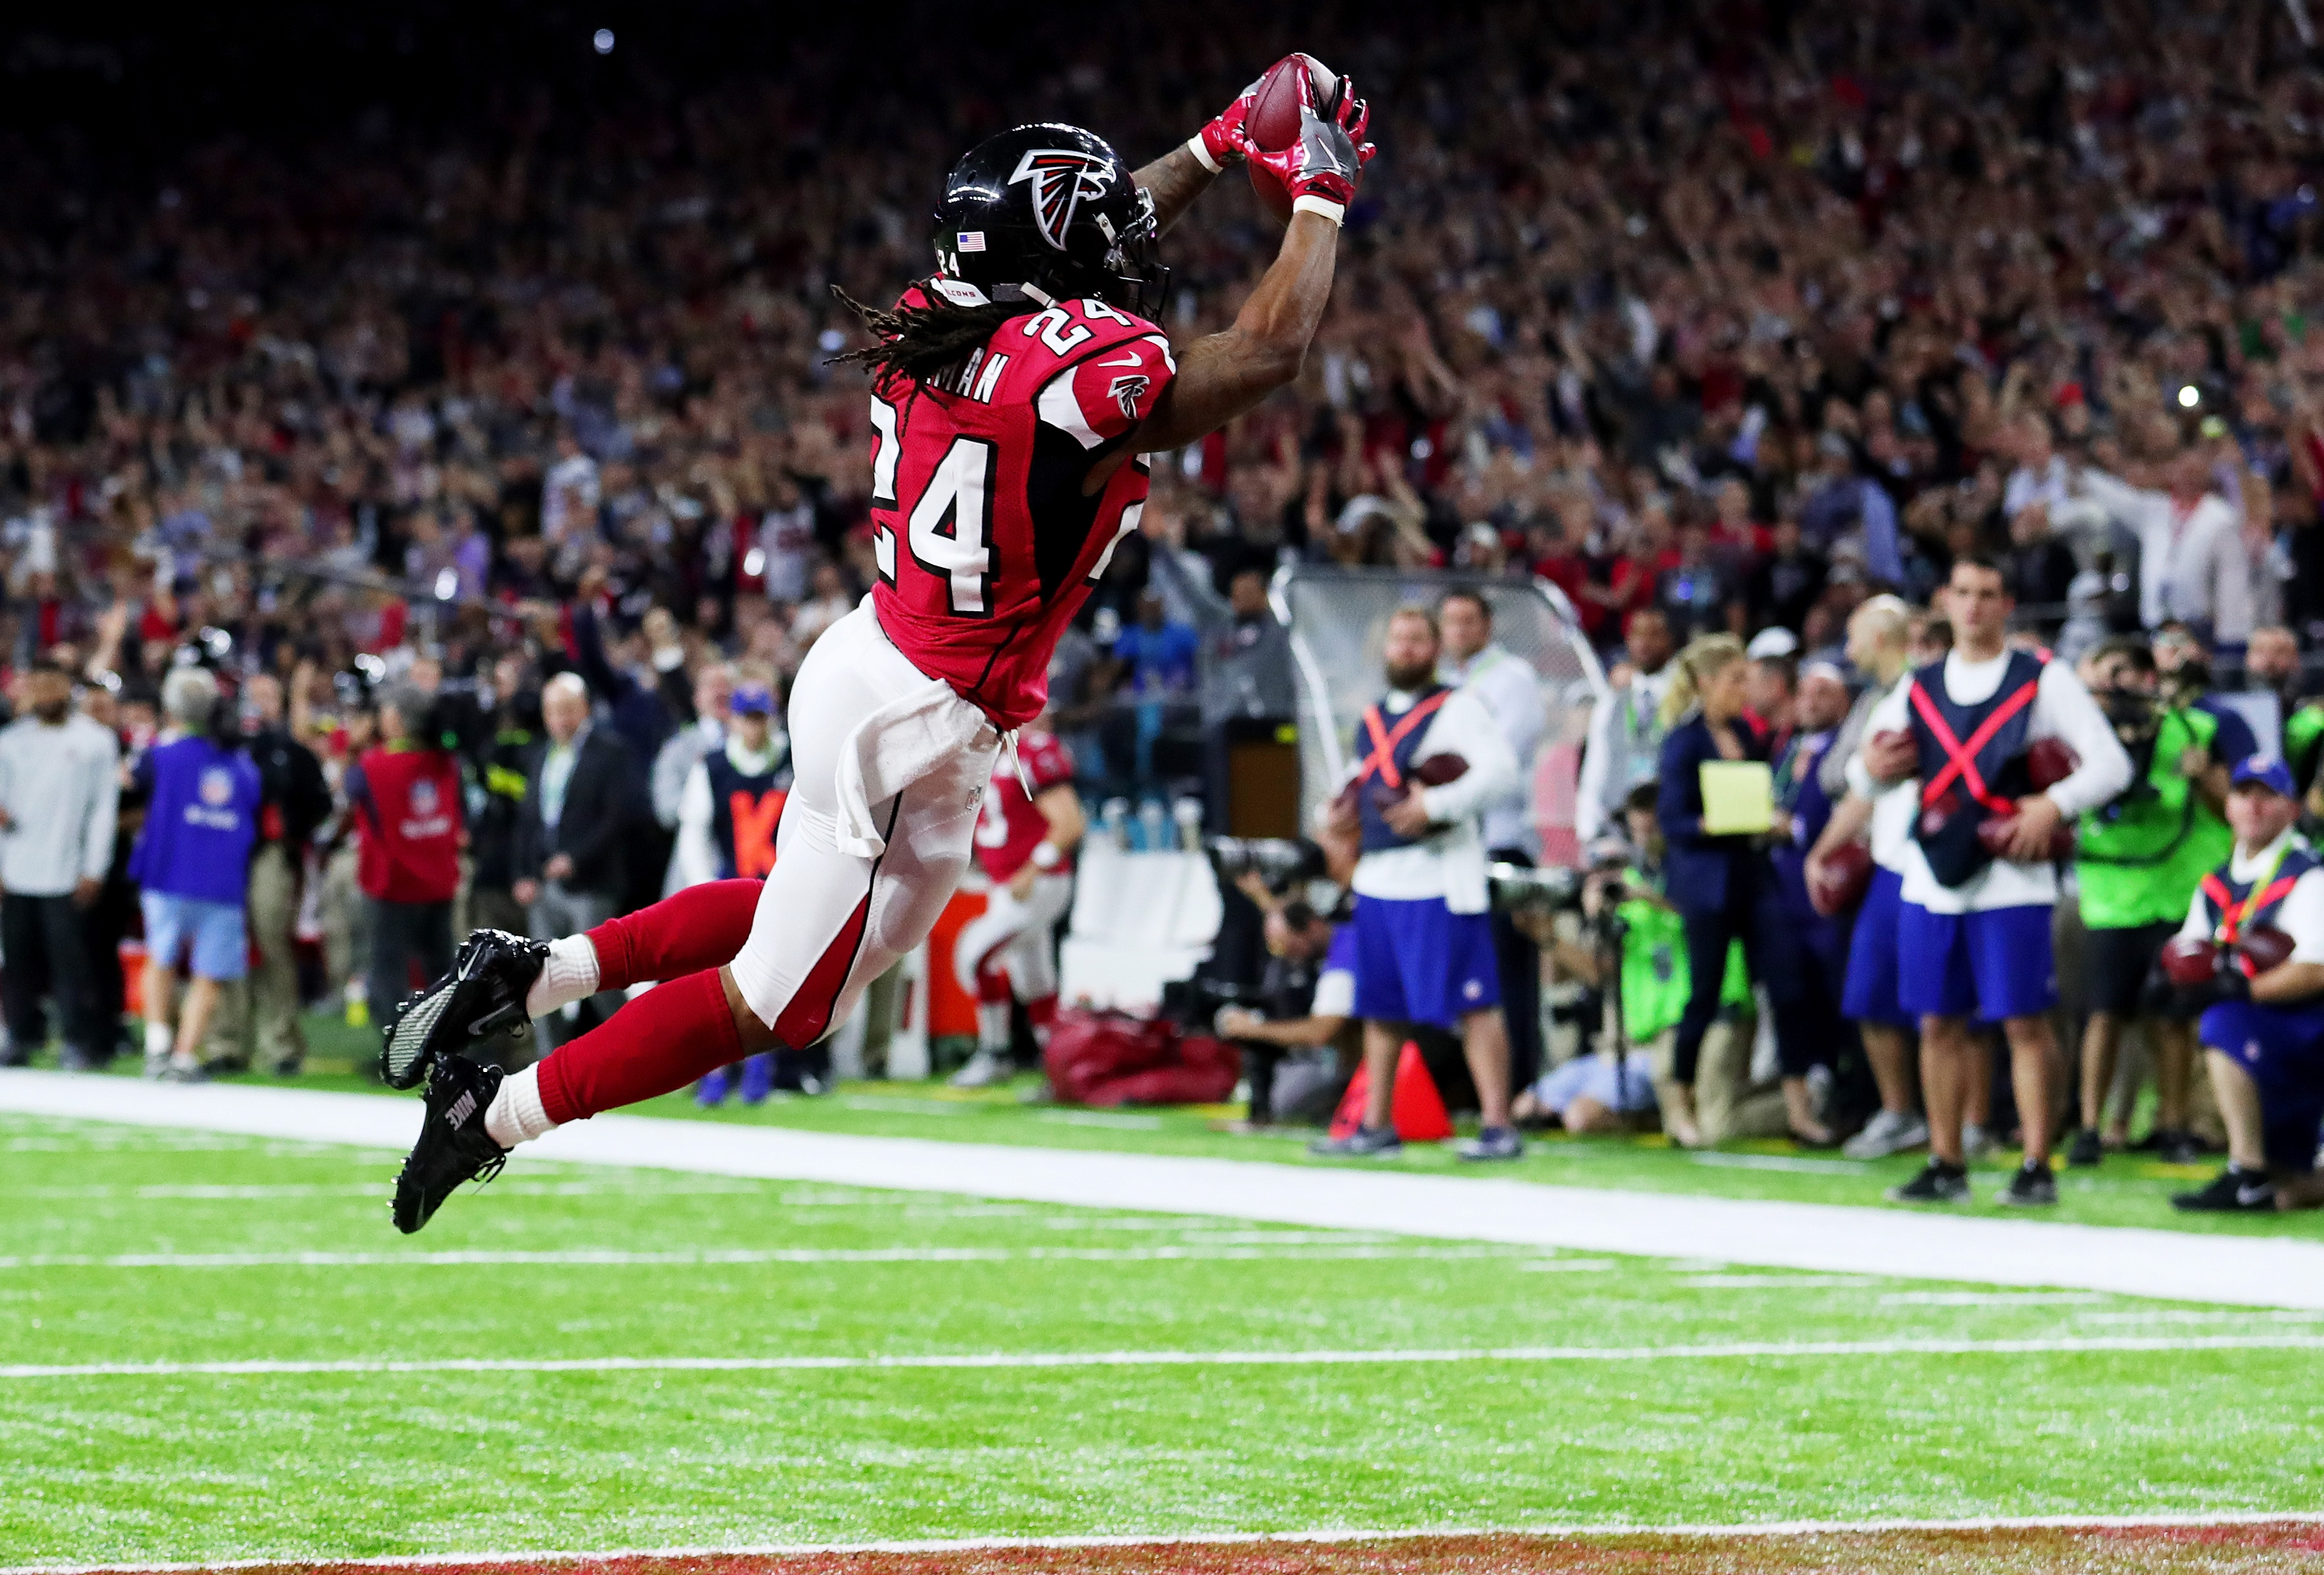 Atlanta Falcons running back Devonta Freeman dives over the goal line for a touchdown in the second quarter of Super Bowl LI. (Getty Images)